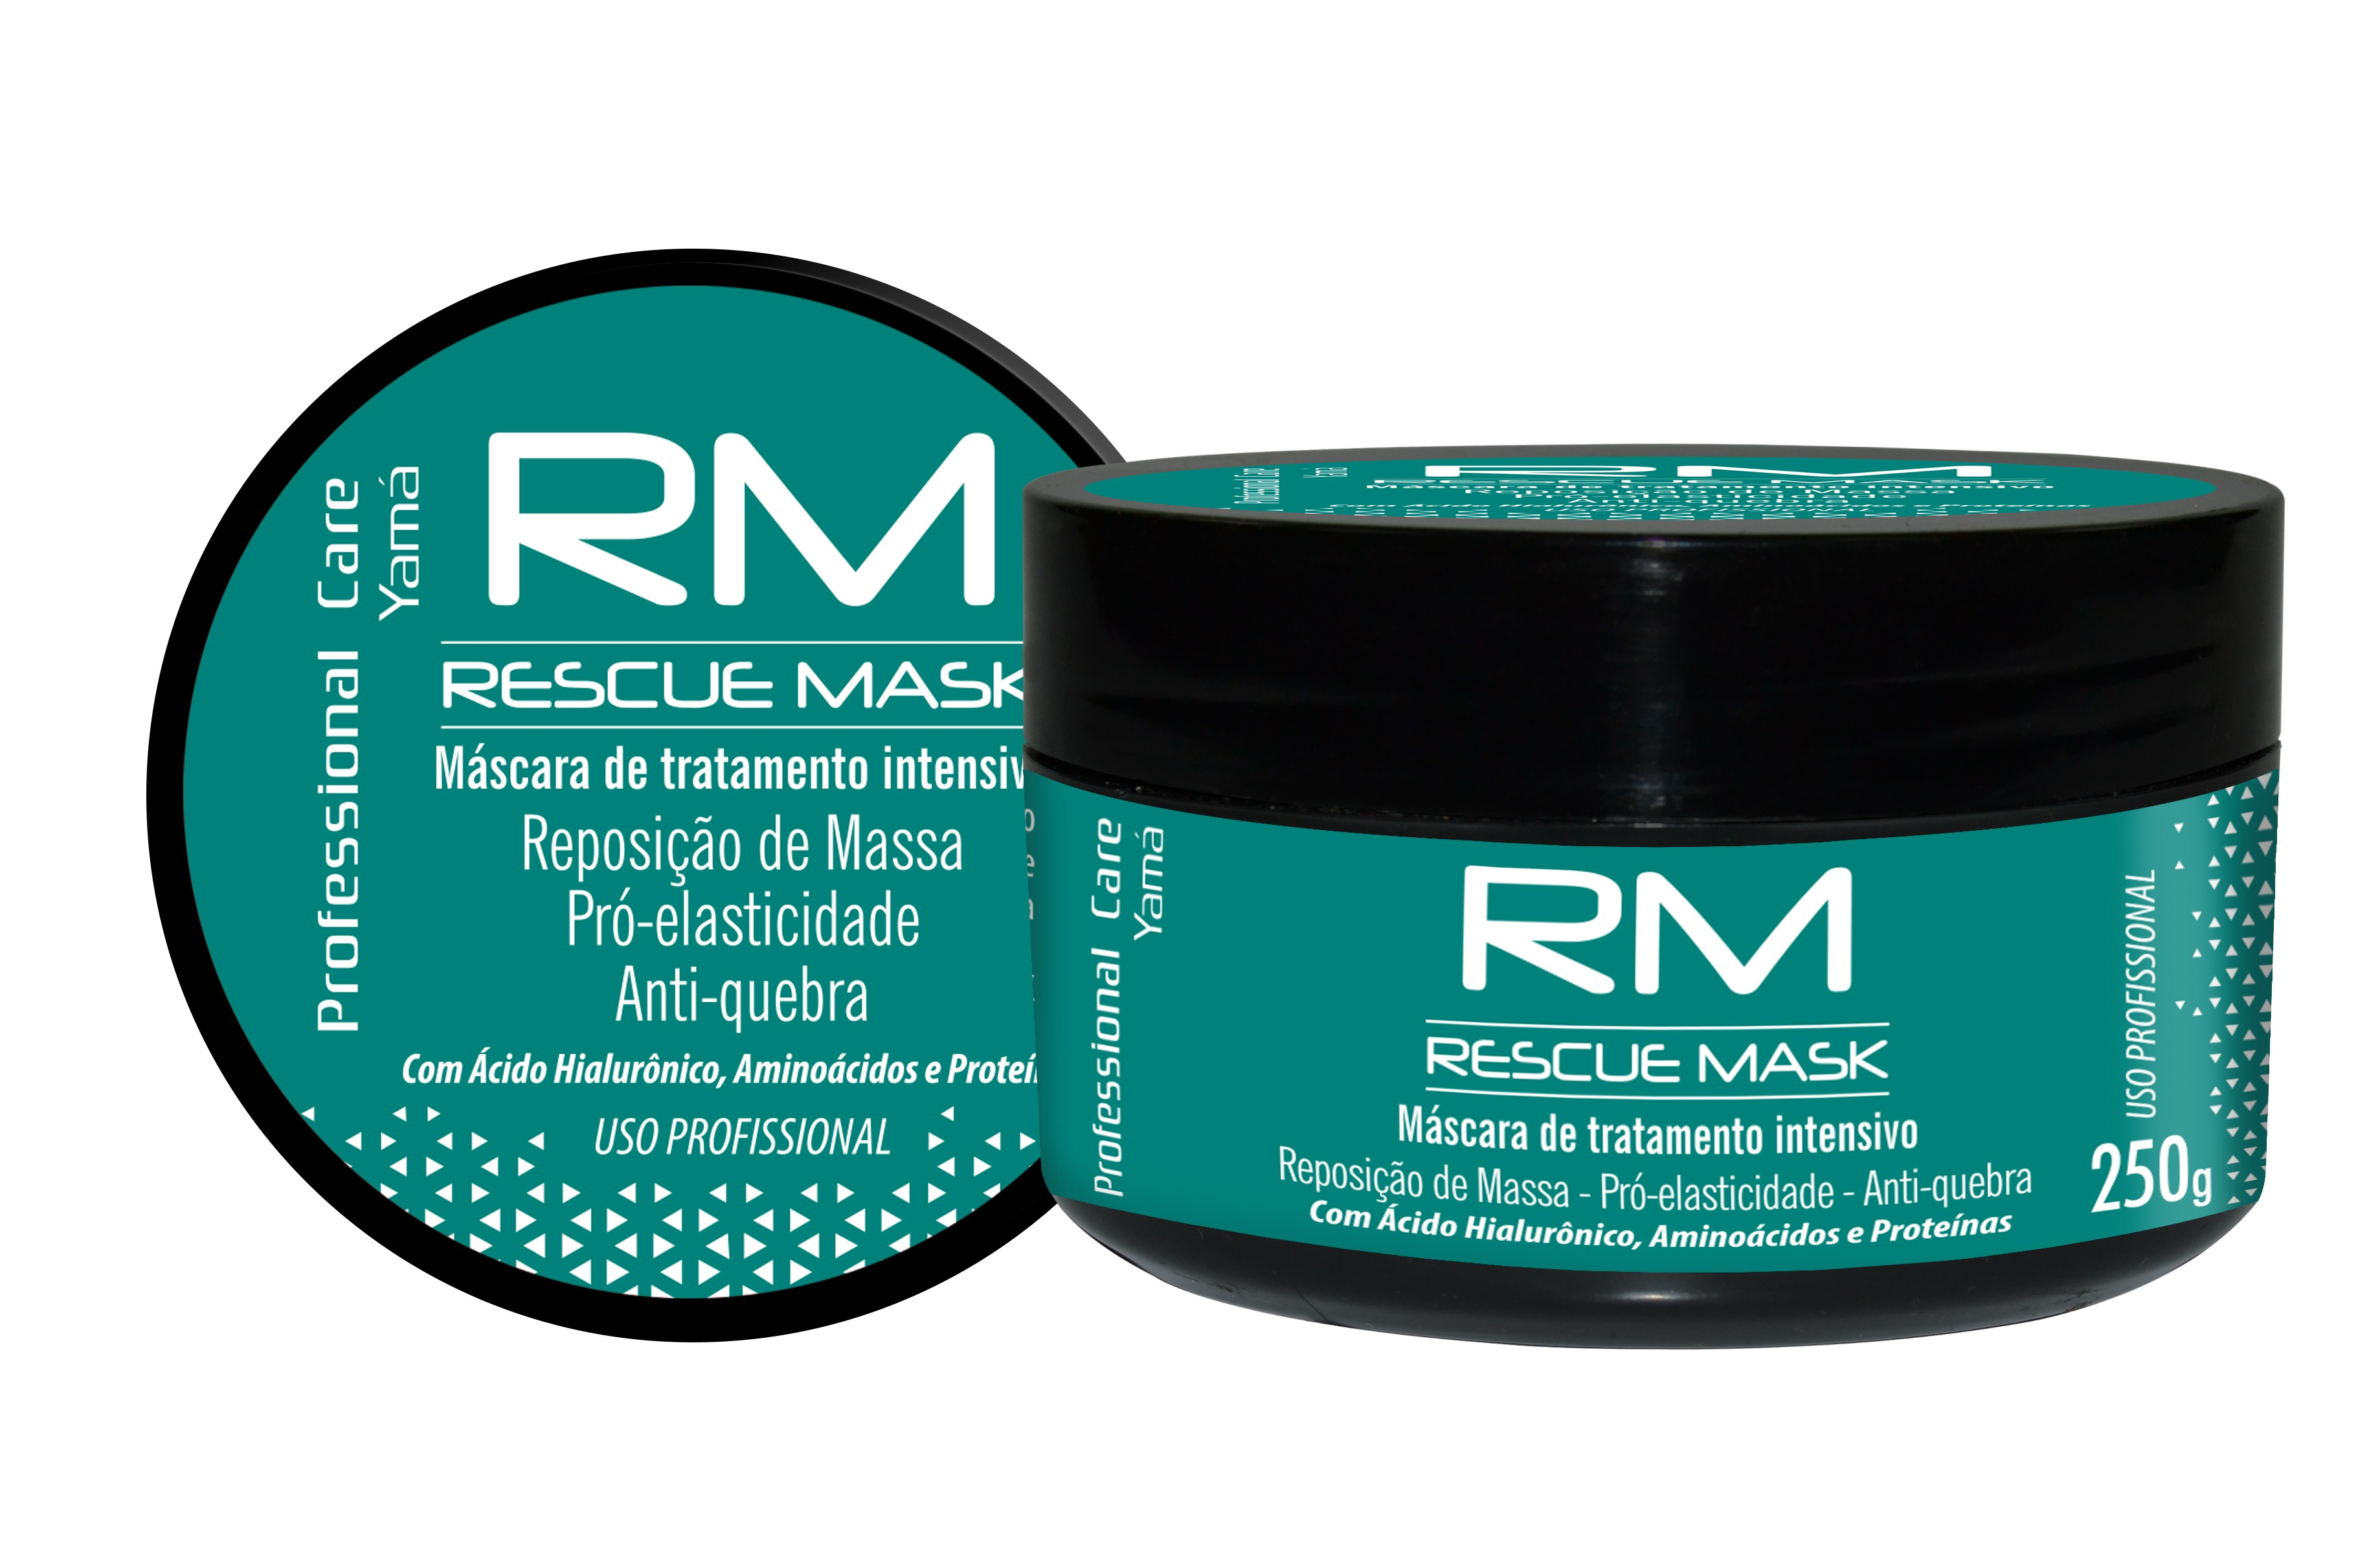 yamá-rescue-mask-tratamento-intensivo-professional-care